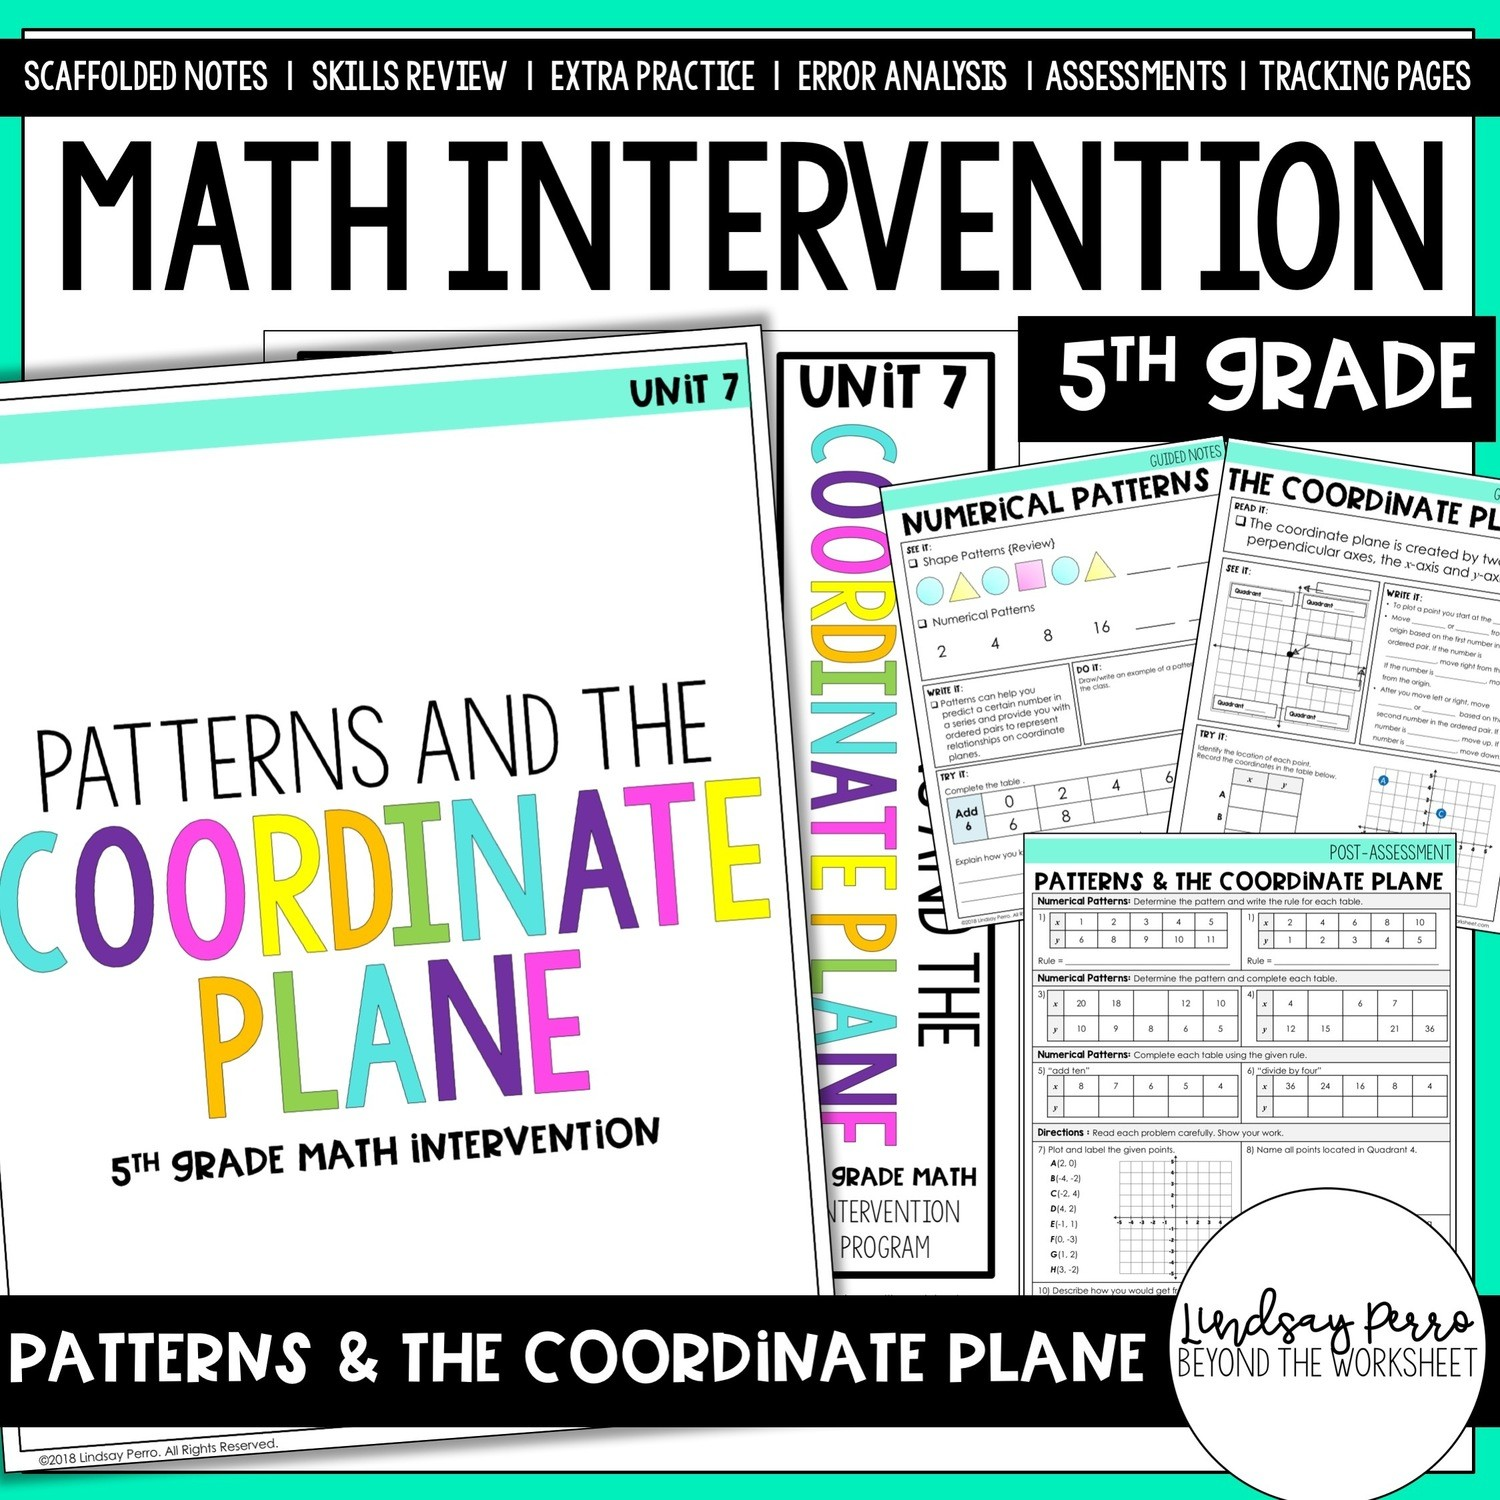 hight resolution of 5th Grade Intervention: Patterns \u0026 The Coordinate Plane   Store - Lindsay  Perro